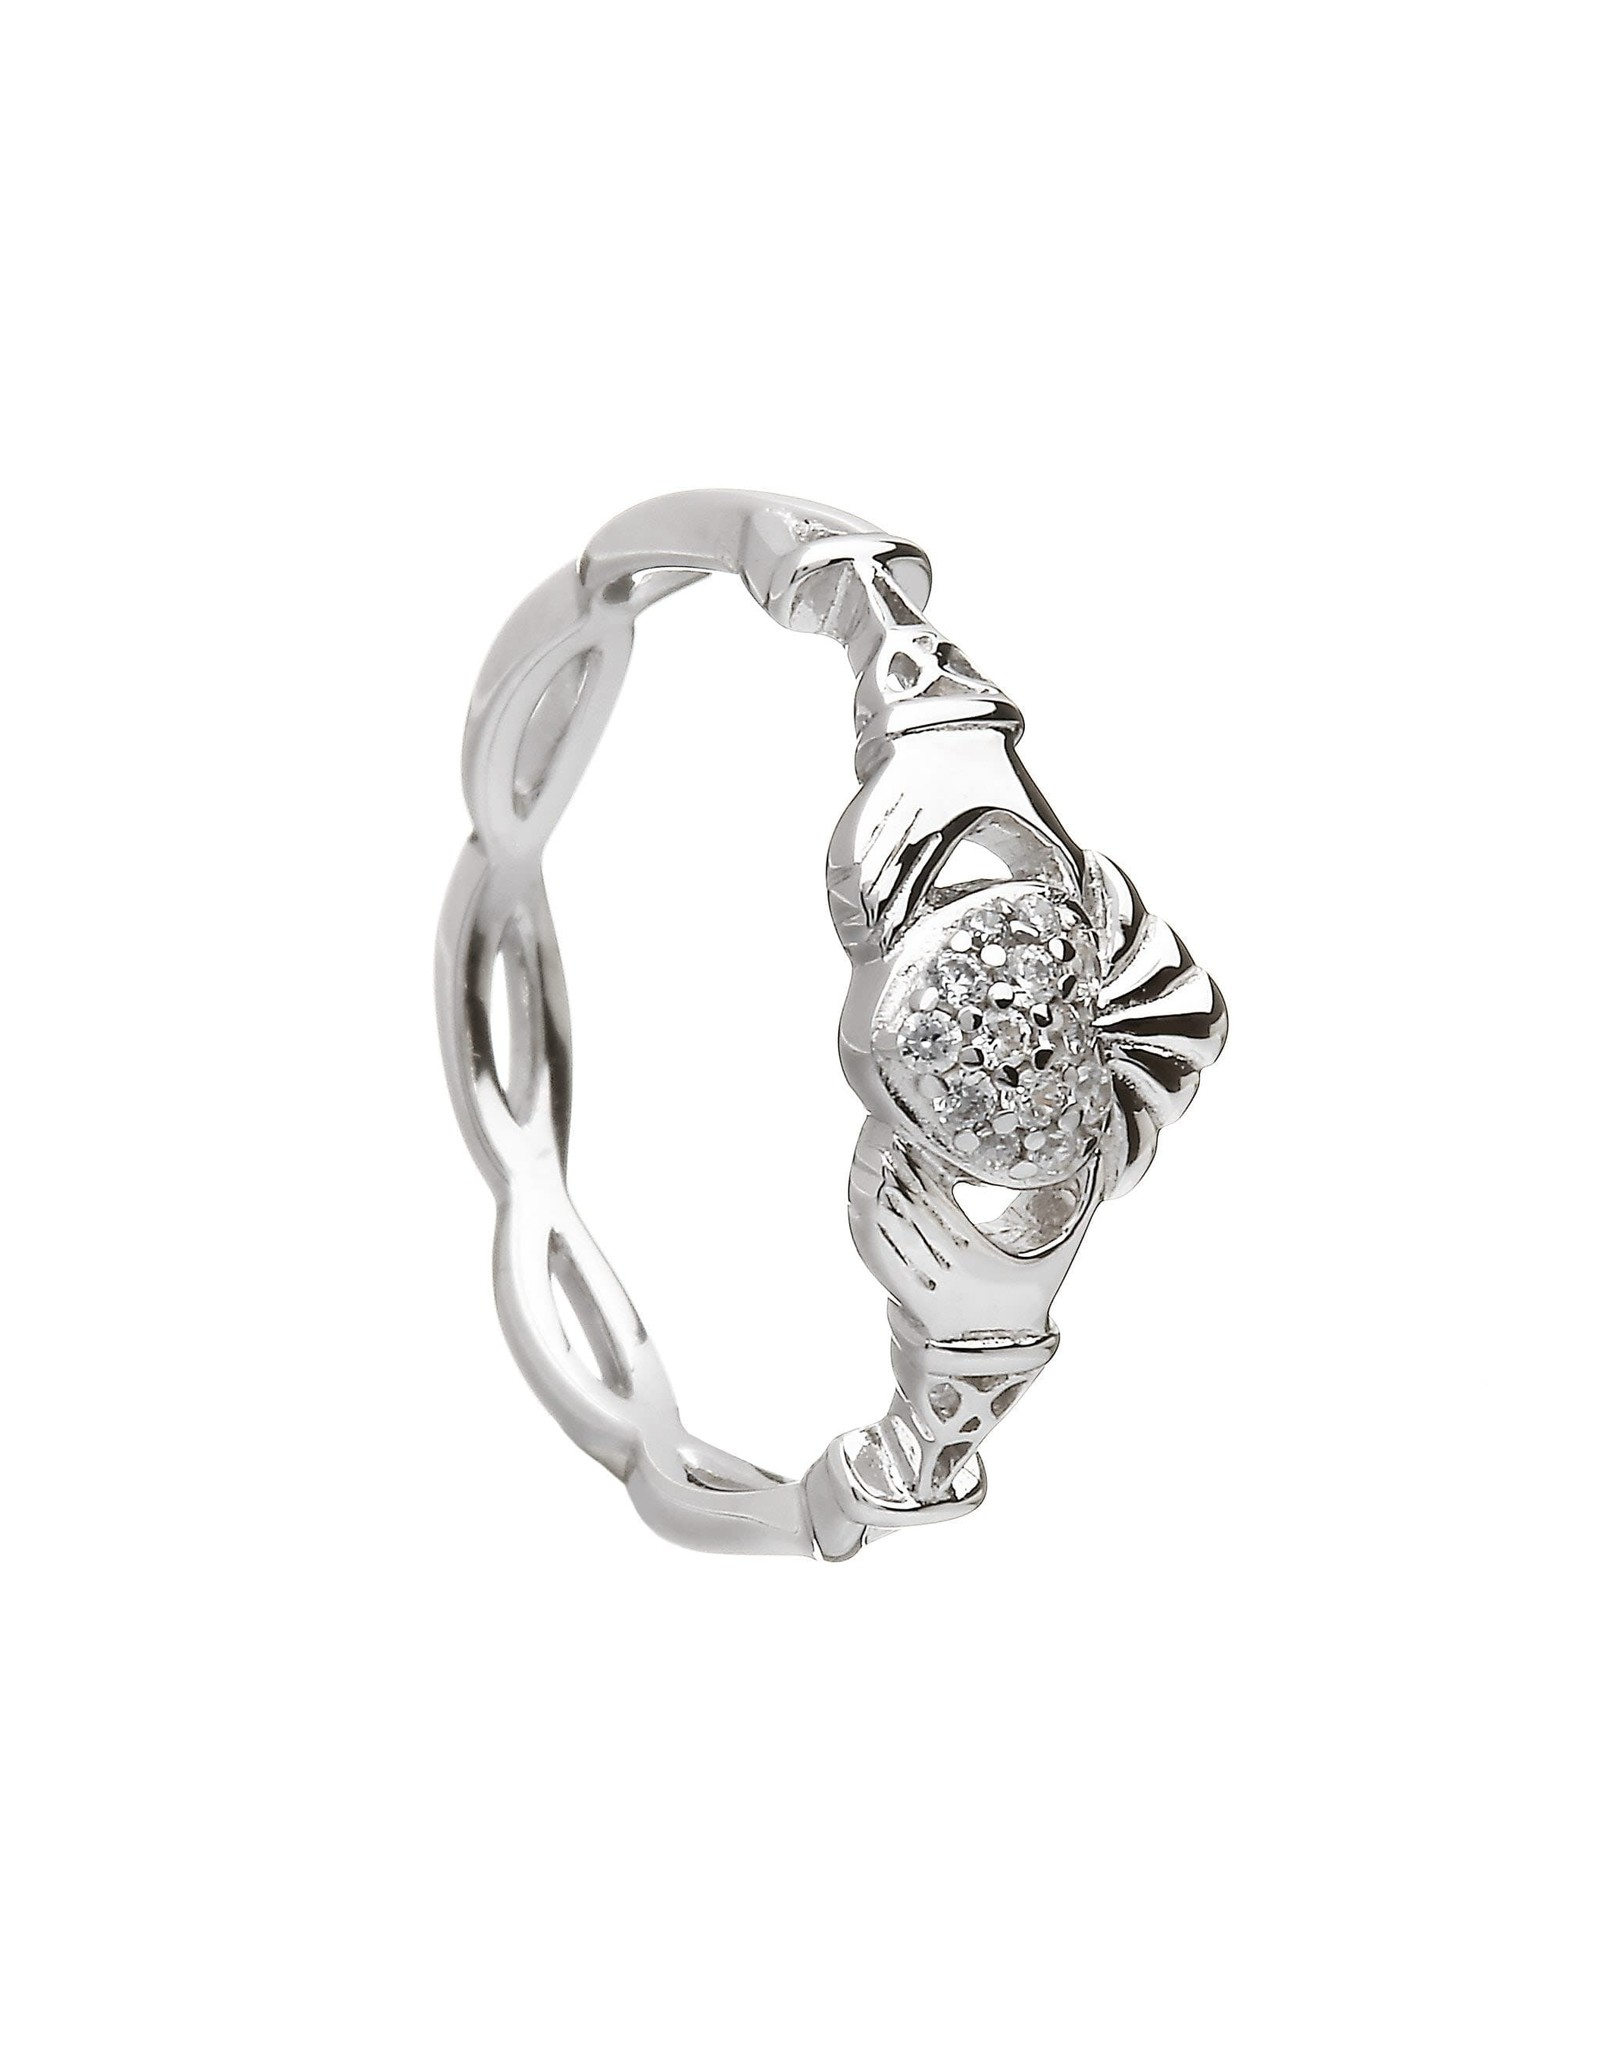 Boru Jewelry Sterling Silver Pave Set Claddagh Ring